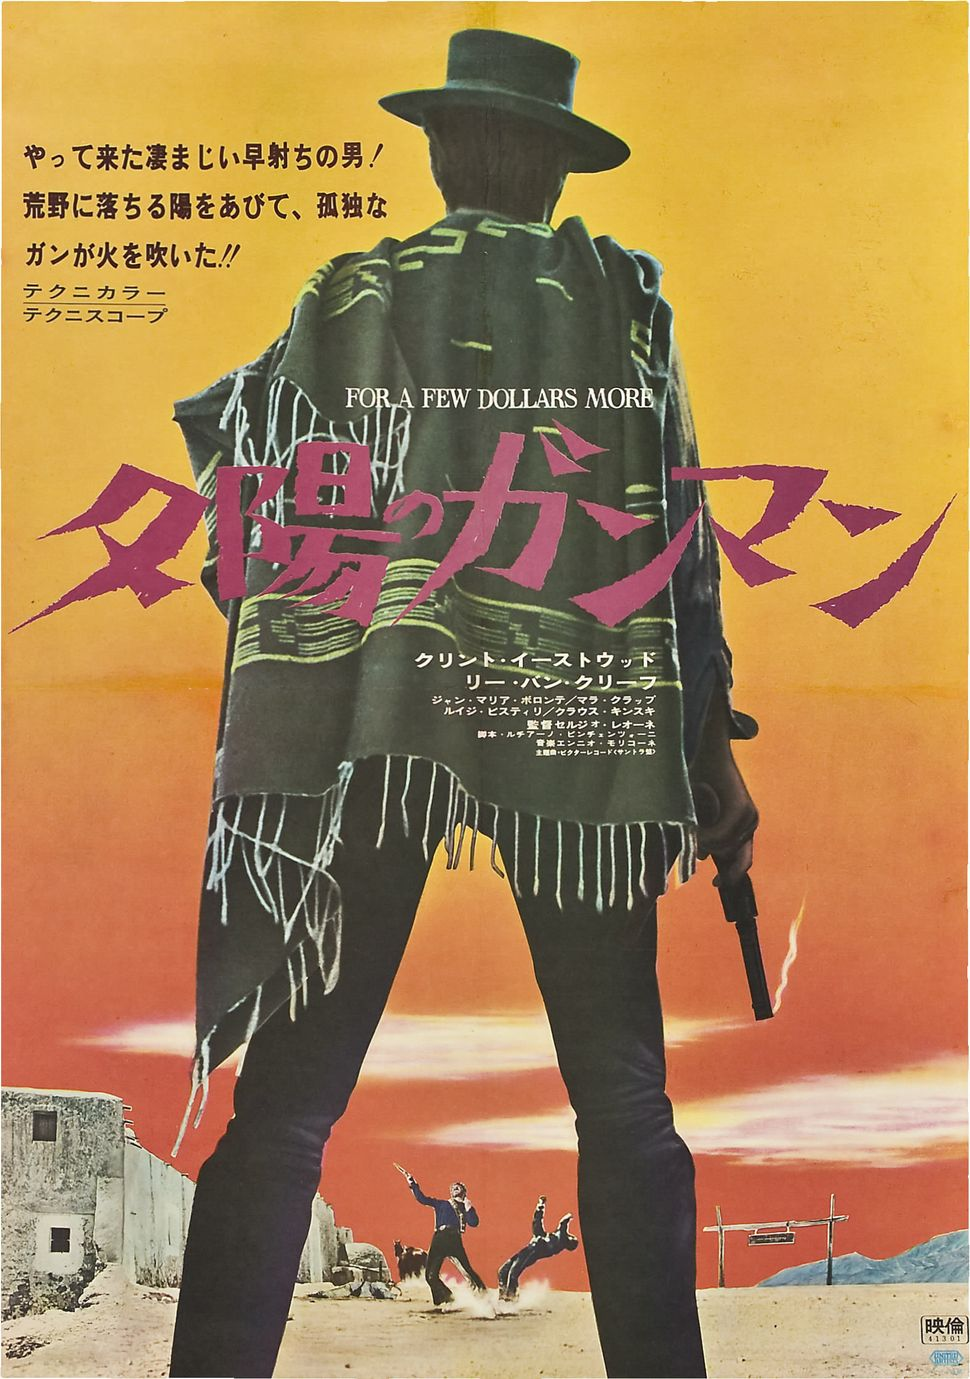 """<a href=""""http://movieposters.ha.com/itm/western/for-a-few-dollars-more-united-artists-1967-japanese-b2-20-x-29-/a/7003-86045."""